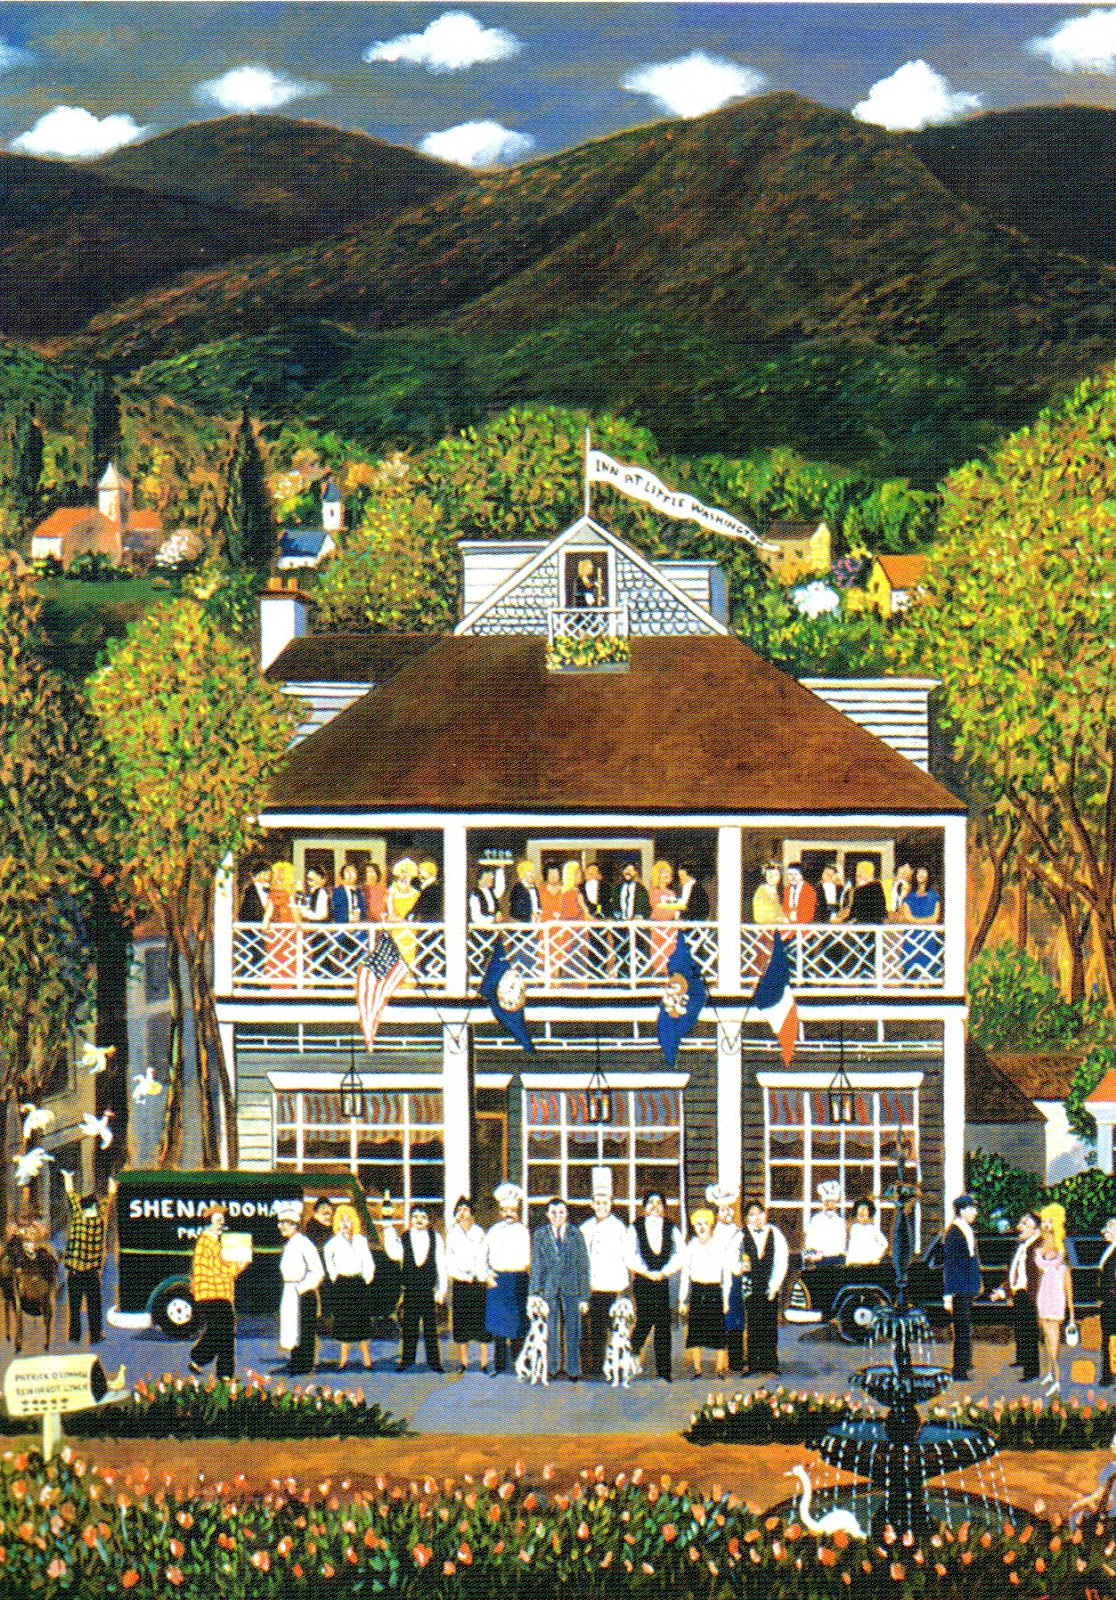 We Had Not Been To The Inn At Little Washington Since 2006 And Thought It Would Be Great Go Back There Its Restaurant Are Located In